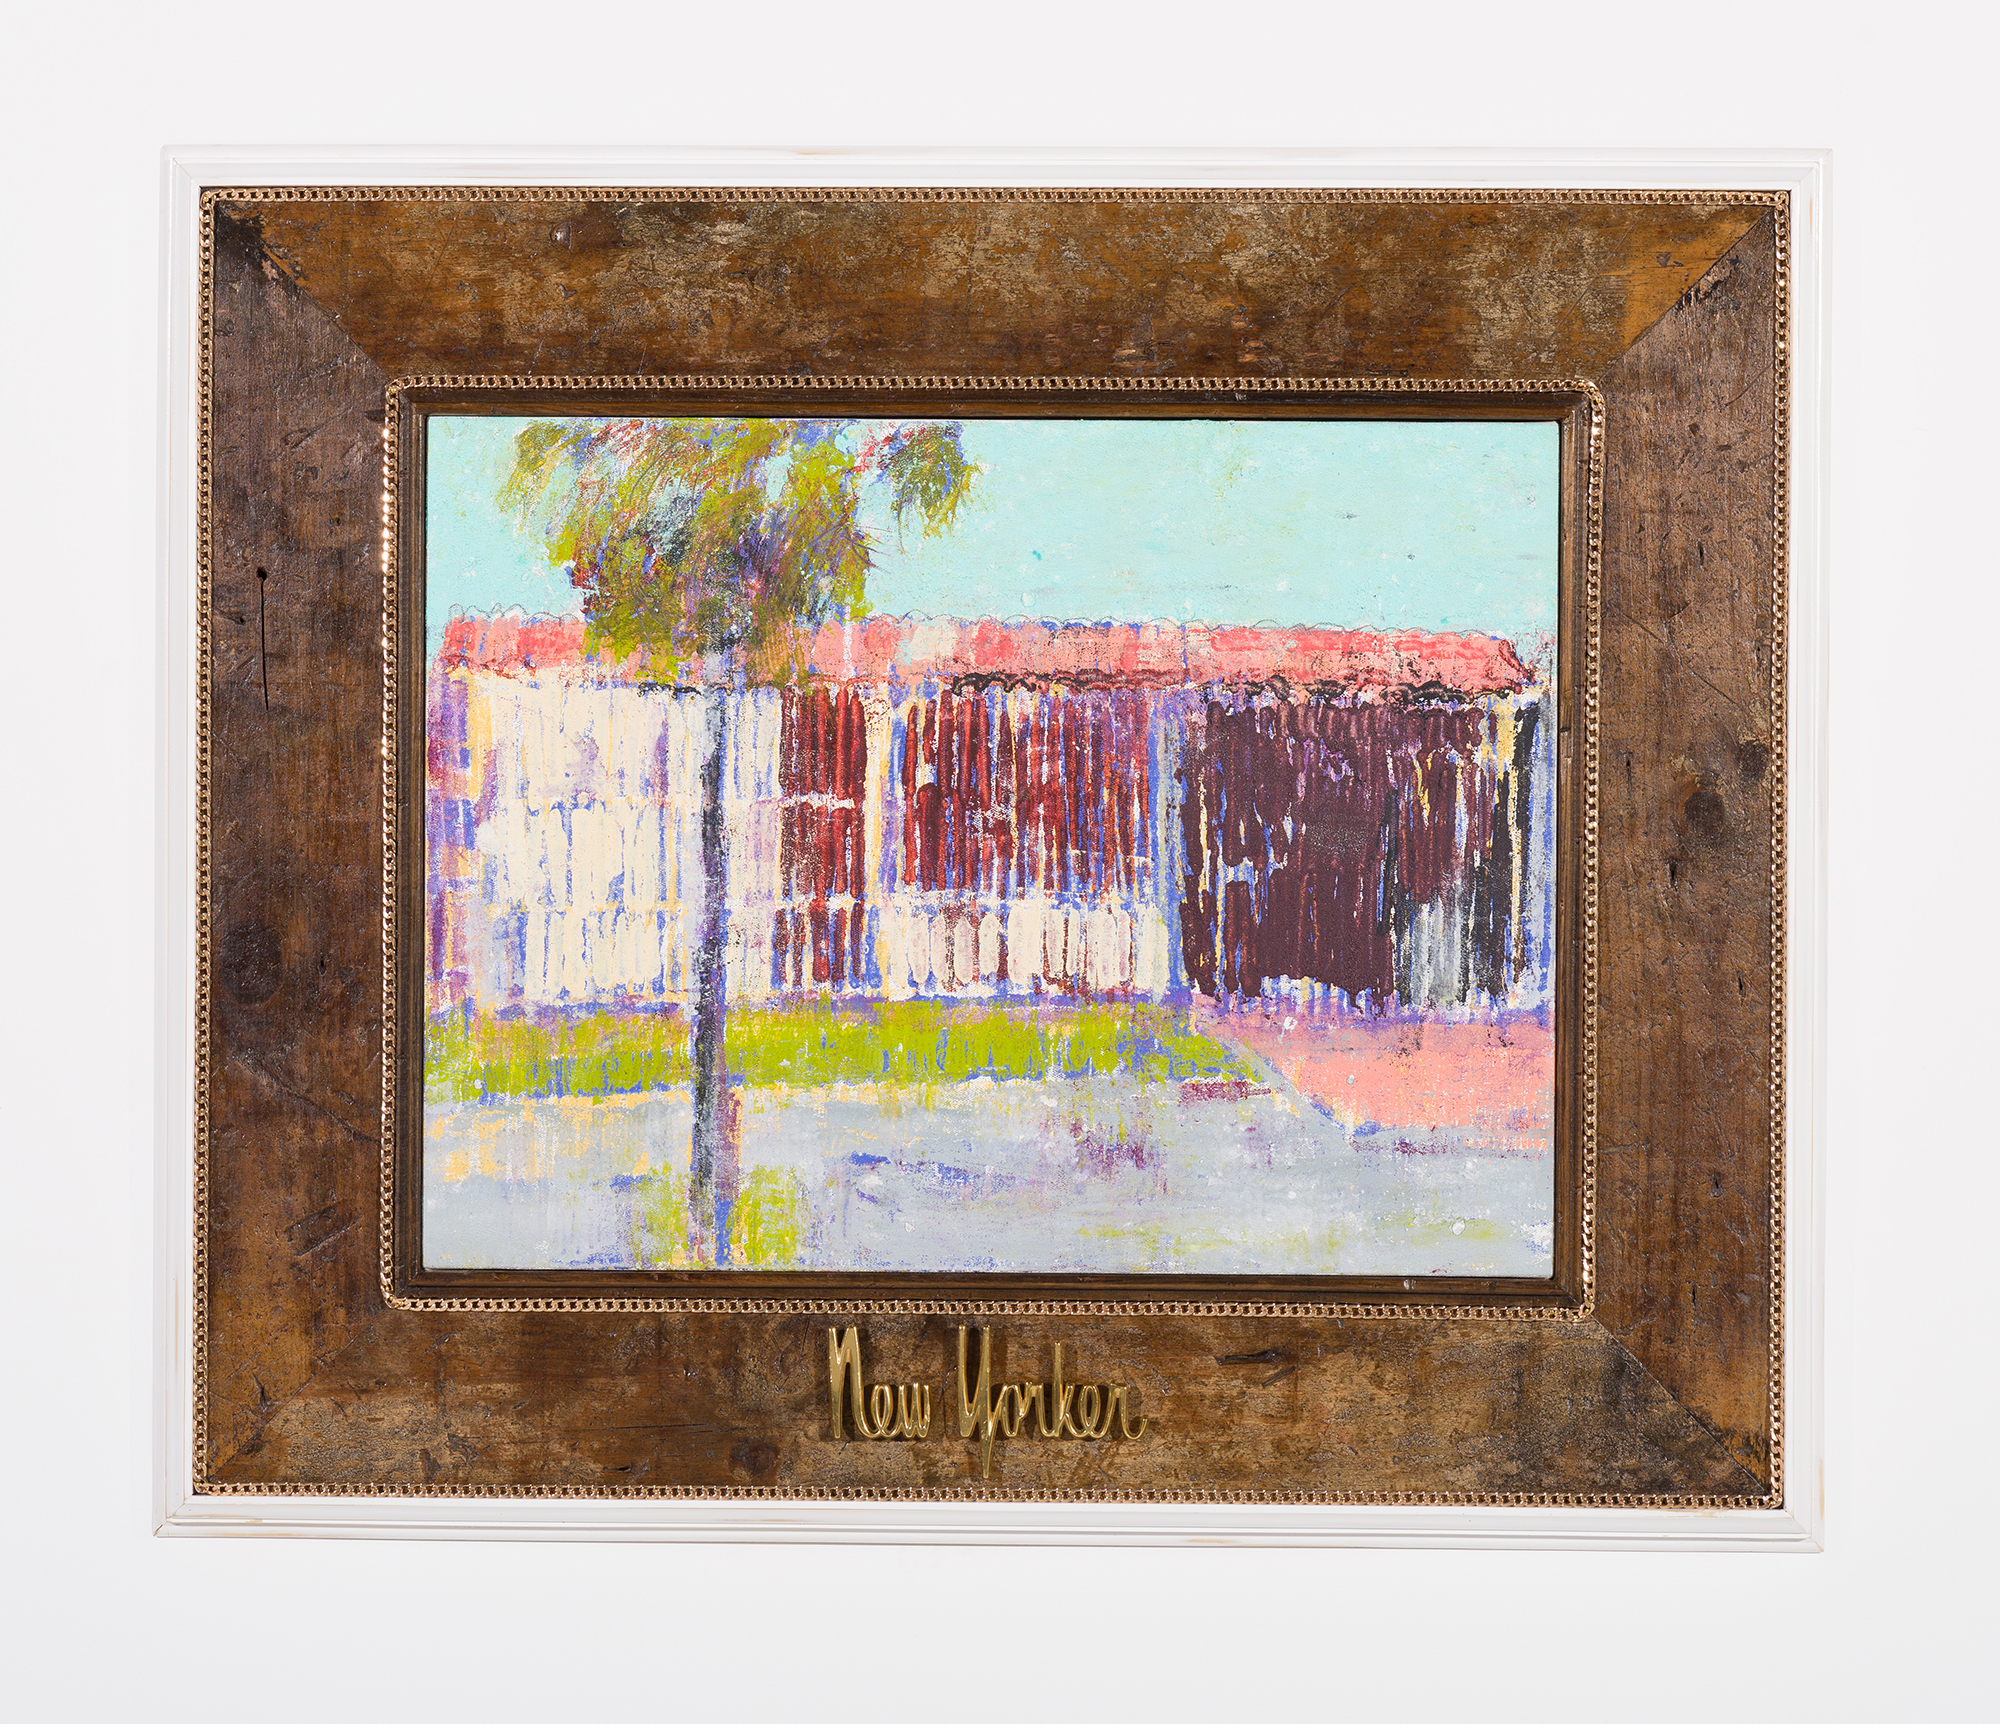 Enoc Perez and Carlos/Rolón Dzine, Guynabo City, Puerto Rico, 2015, Oil on canvas with customized reclaimed wood frame with metal, 18 x 24 inches (unframed)